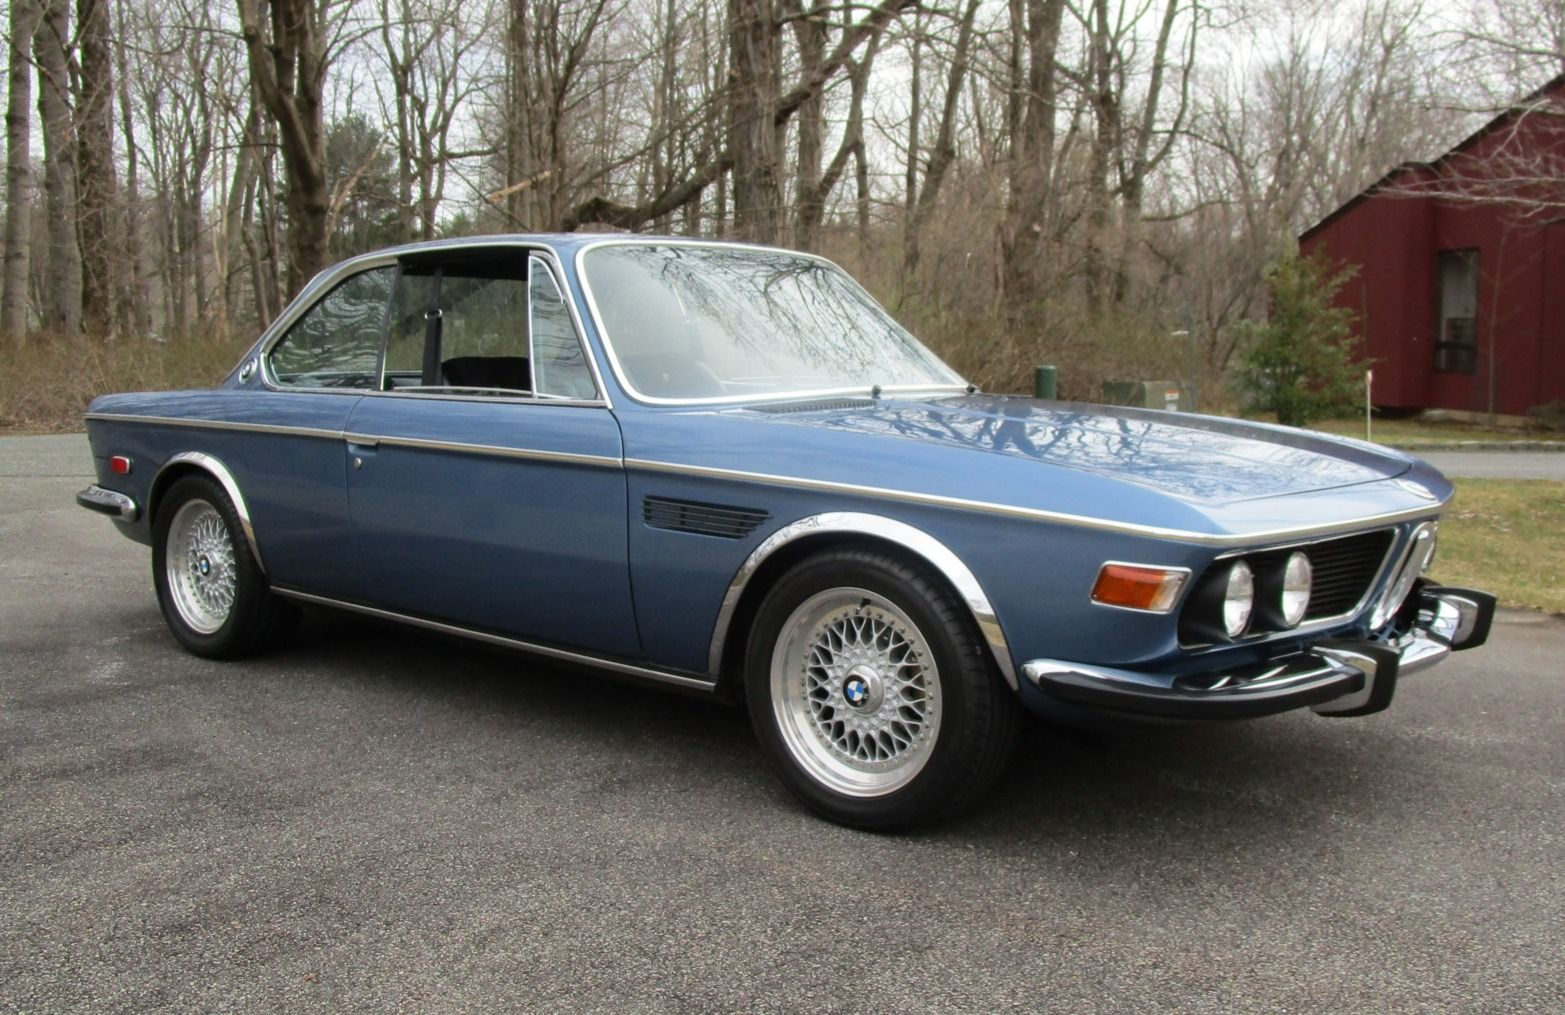 This 1972 Bmw 3 0 Csl Is One Of 429 Series 2 Examples Produced And